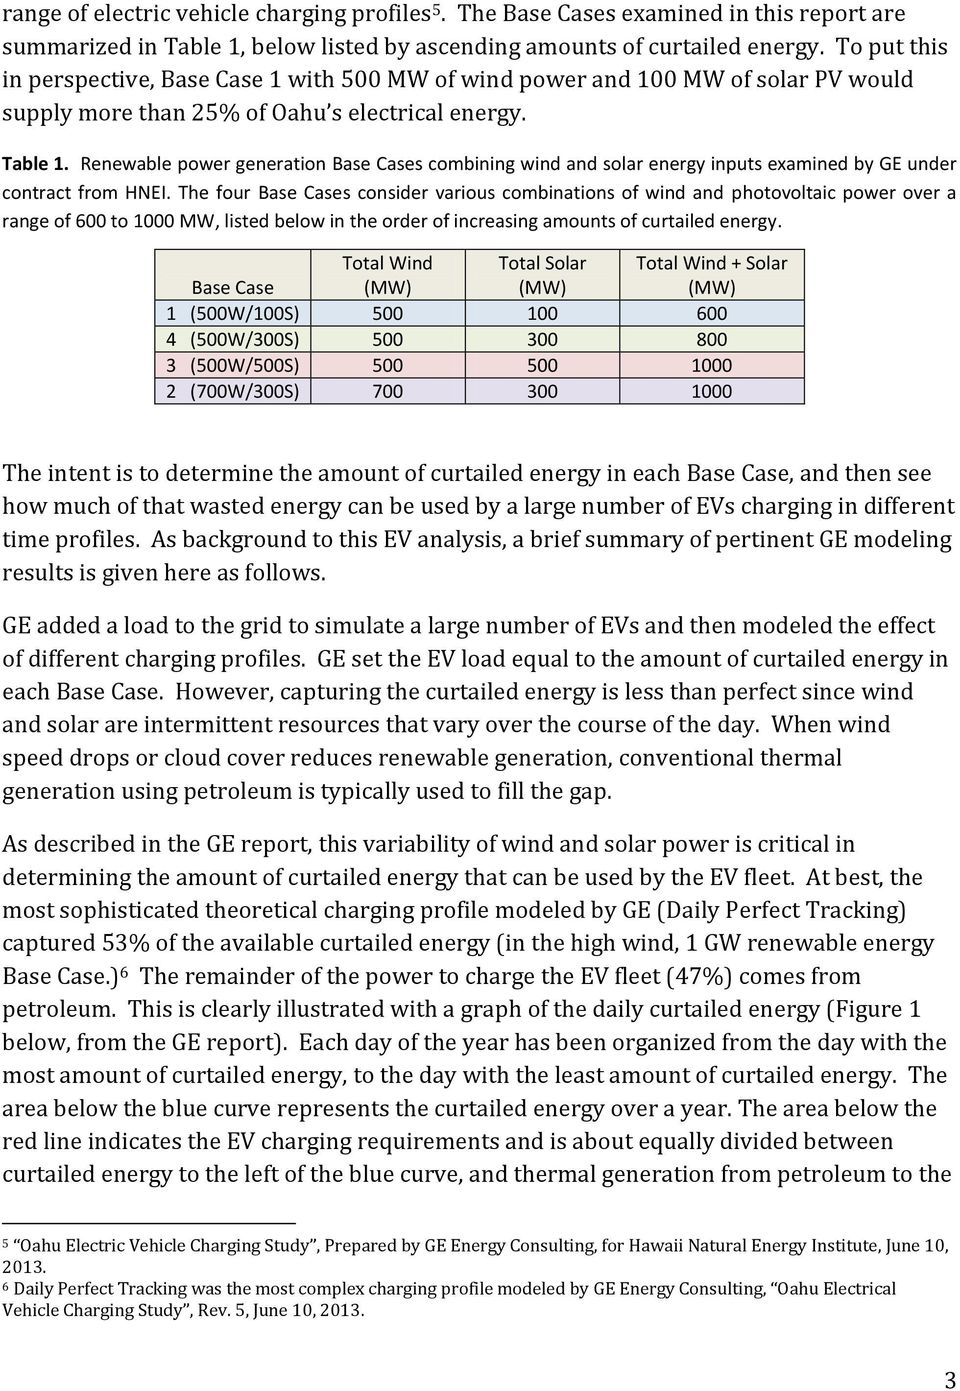 Renewable power generation Base Cases combining wind and solar energy inputs examined by GE under contract from HNEI.